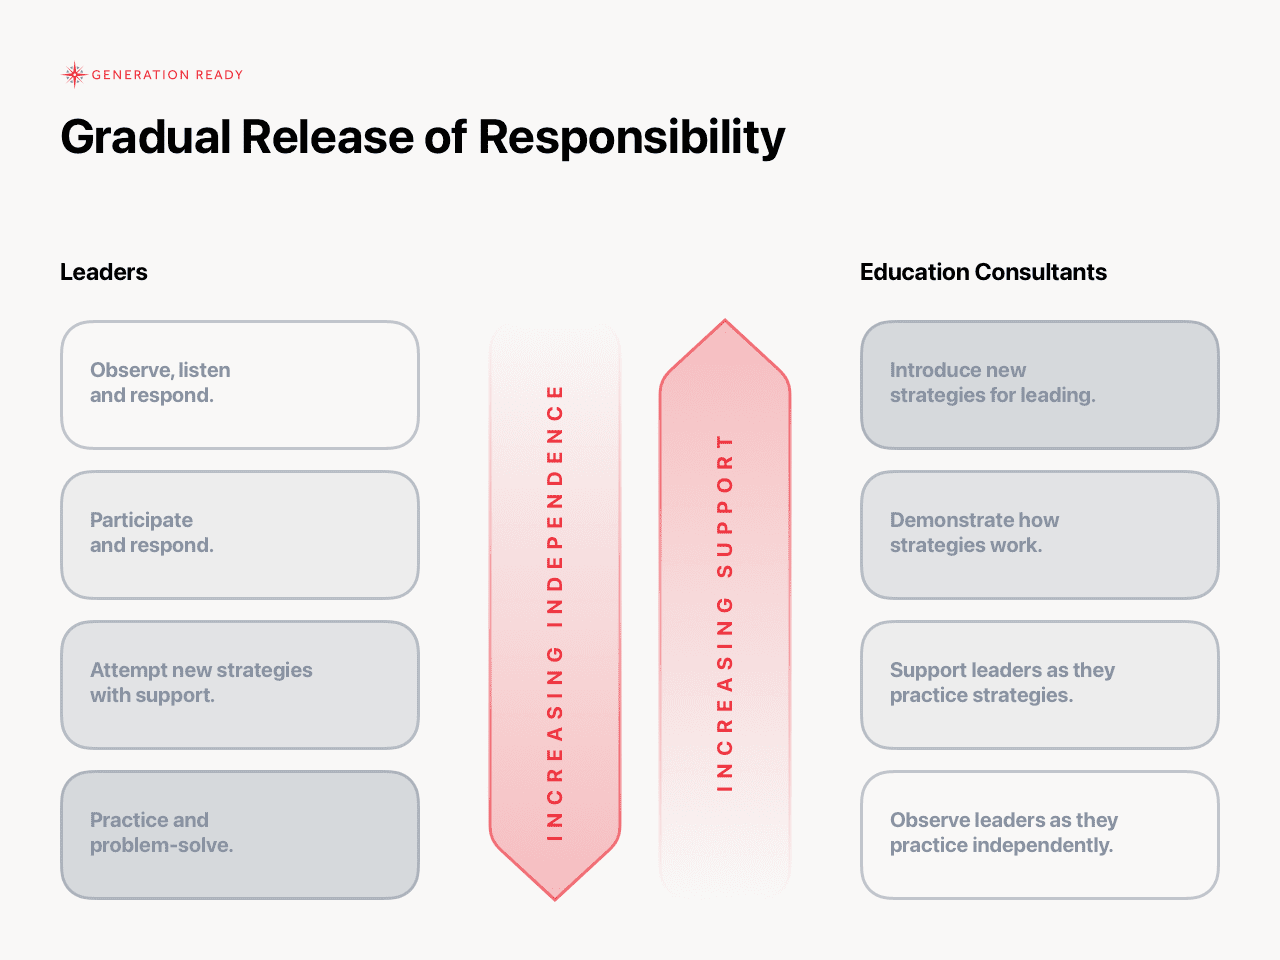 Gradual Release of Responsibility from Education Consultants to School Leaders